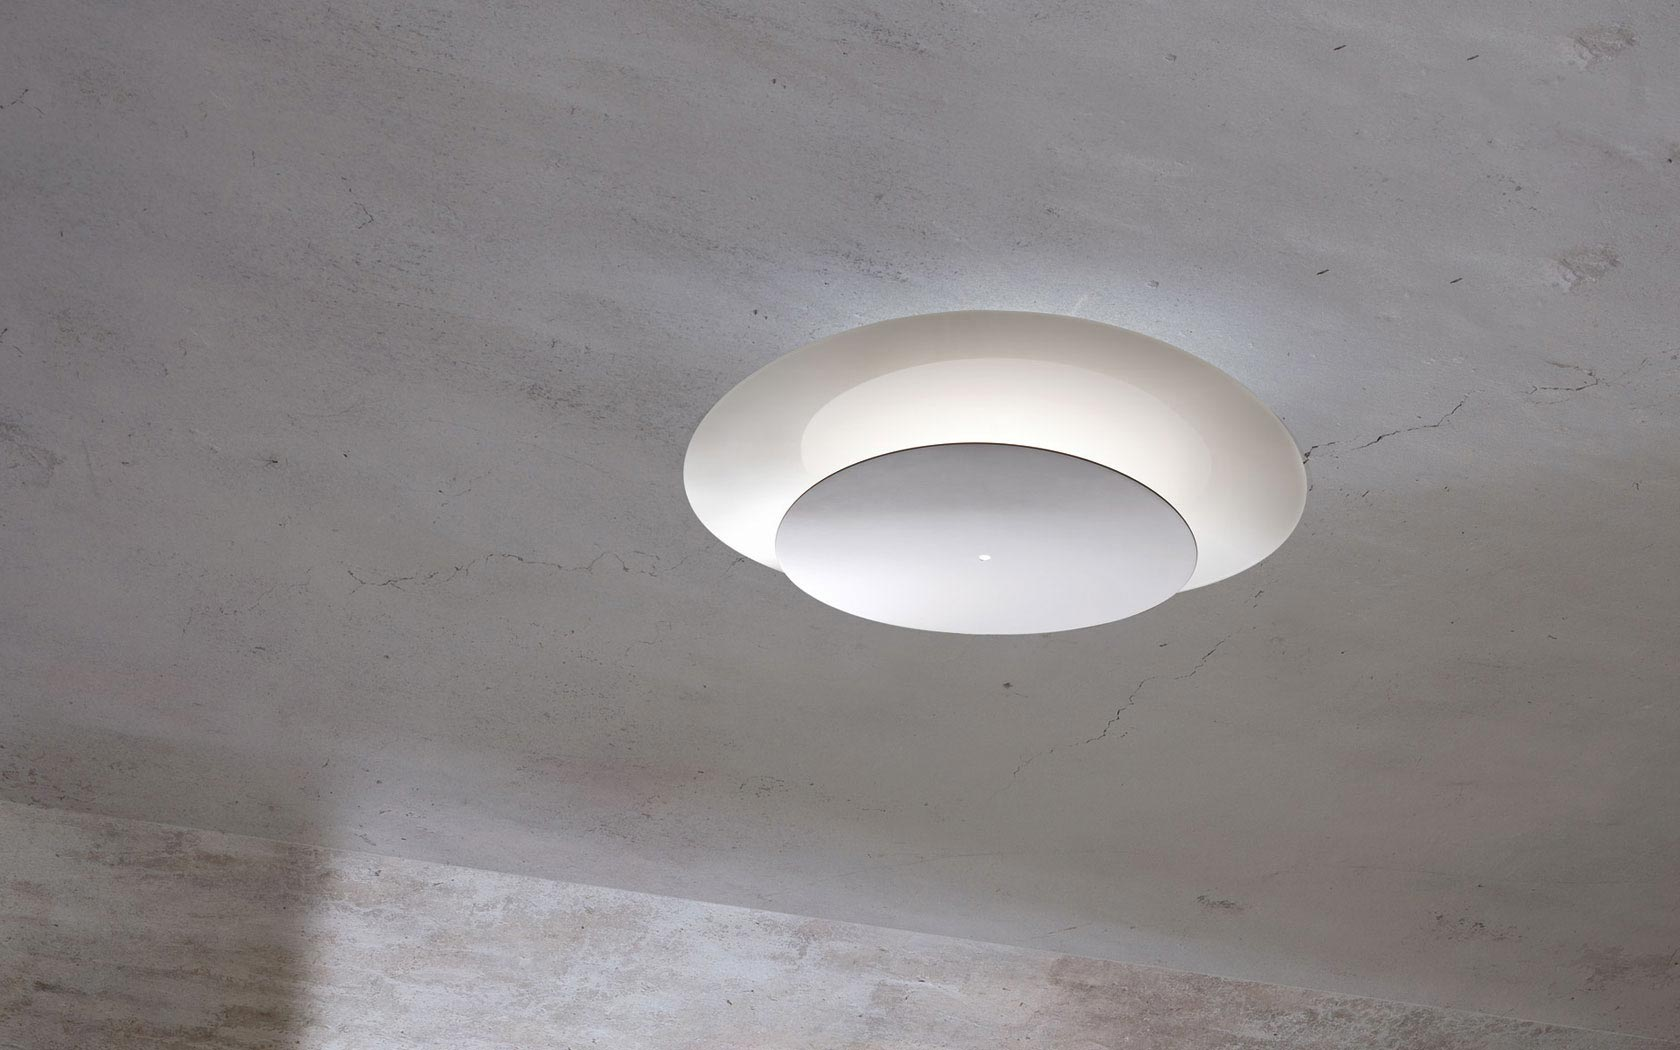 Plana pl 45 di muranoluce by light 4 lampade a soffitto for Lampade a led vendita online